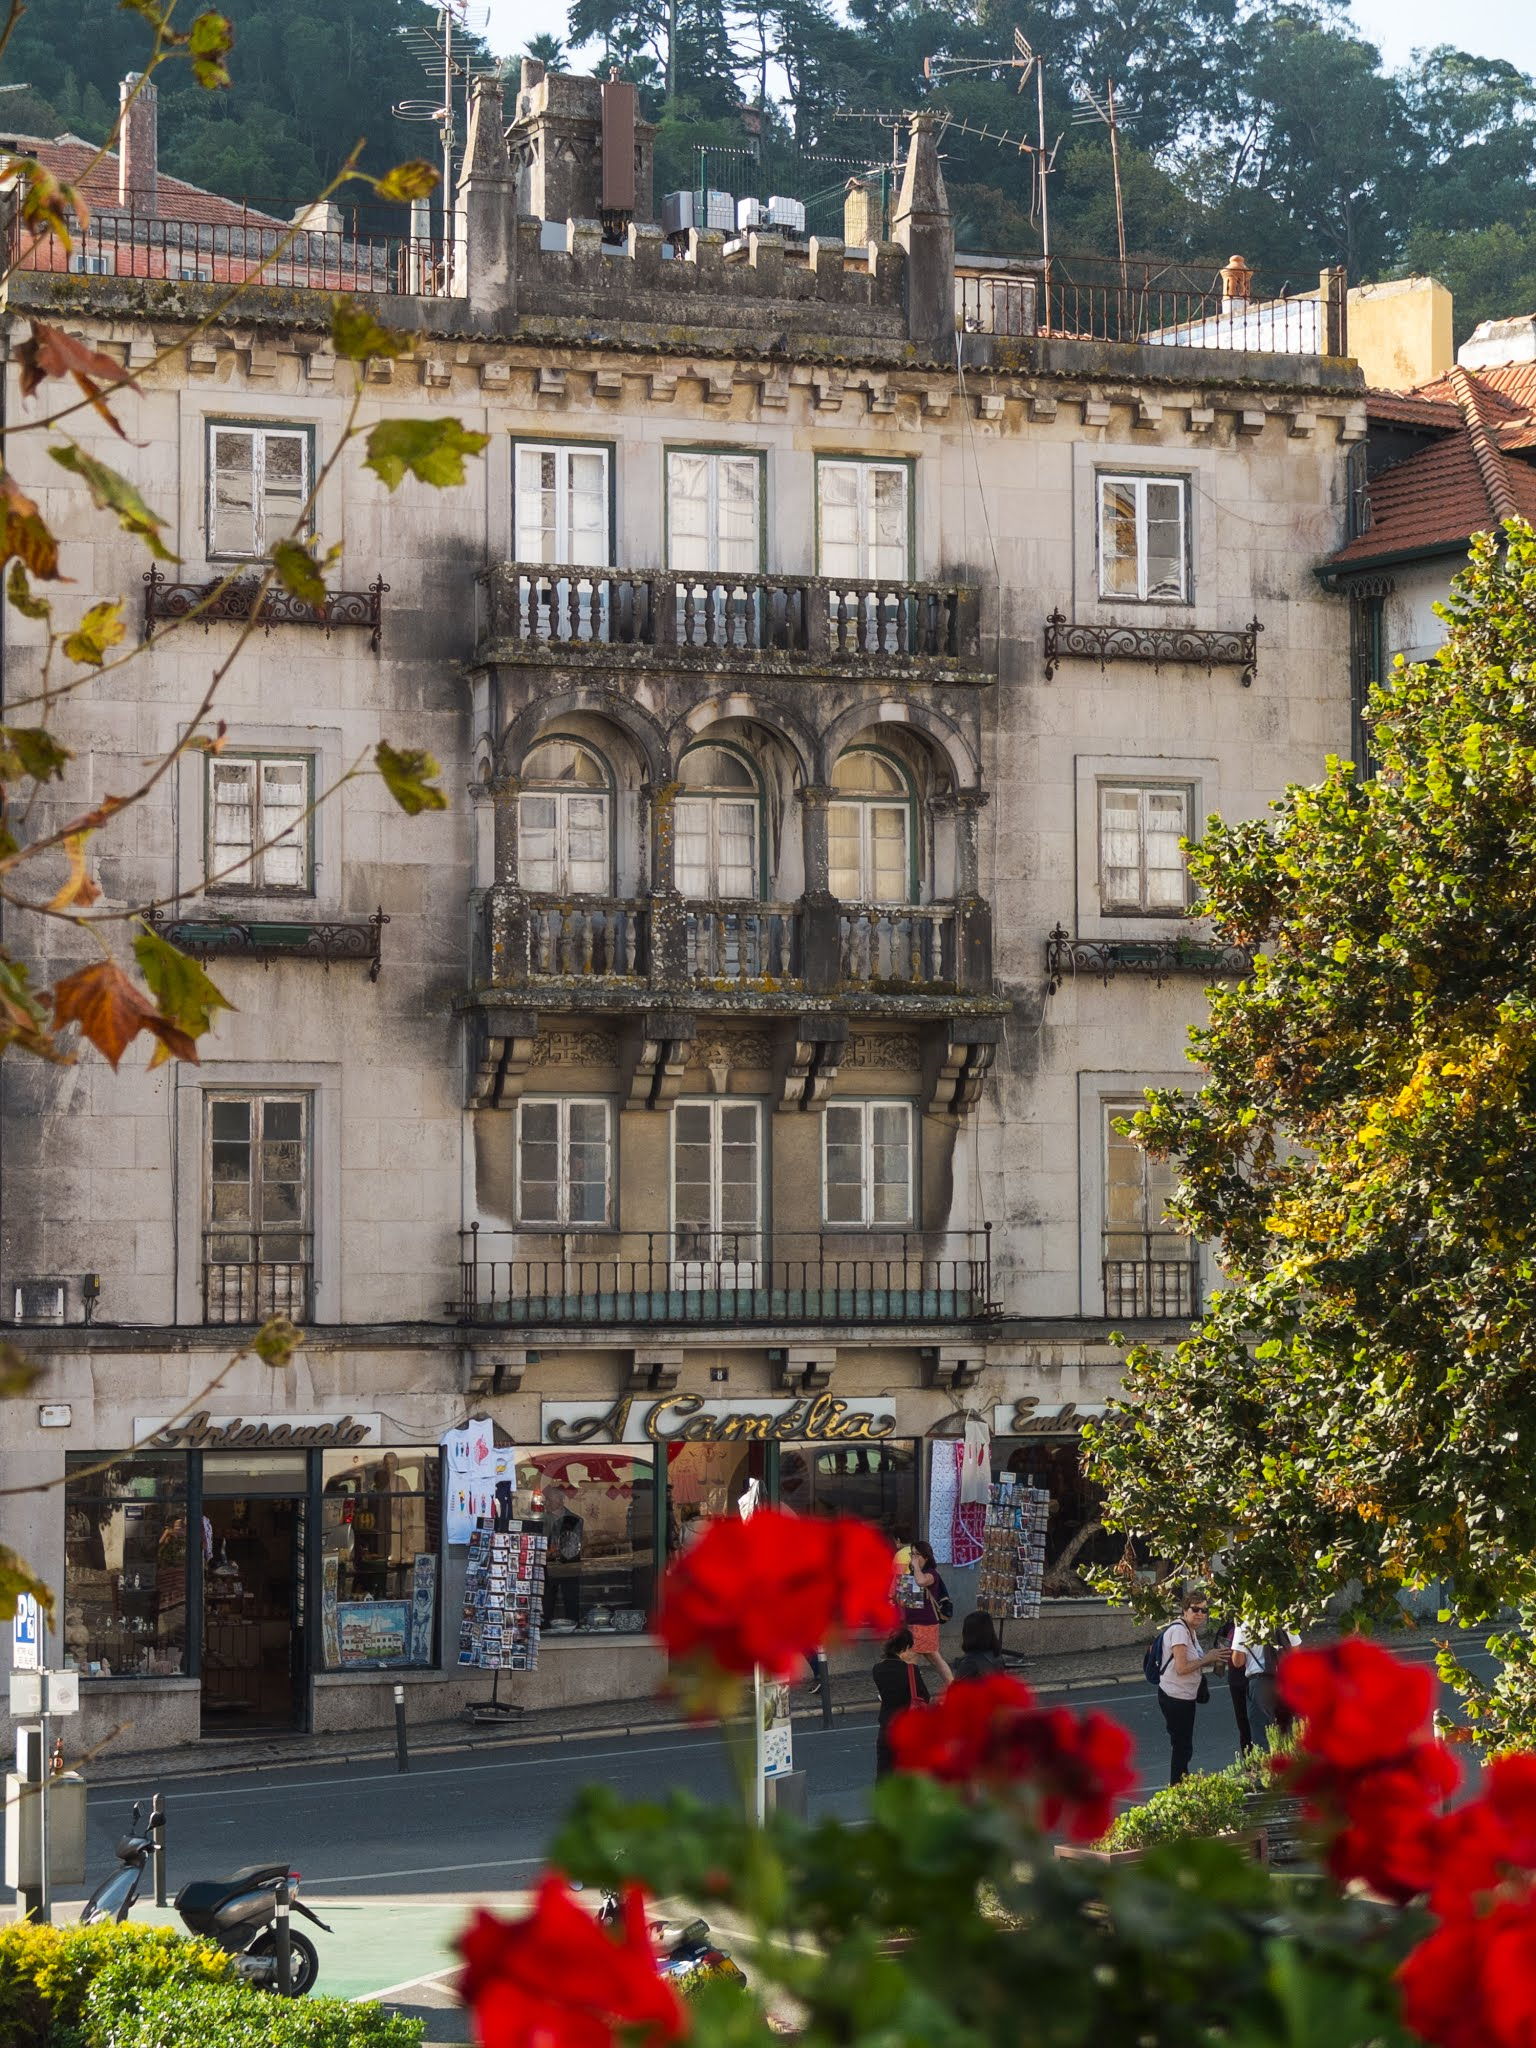 View of a building and red geraniums across from Sintra National Palace.